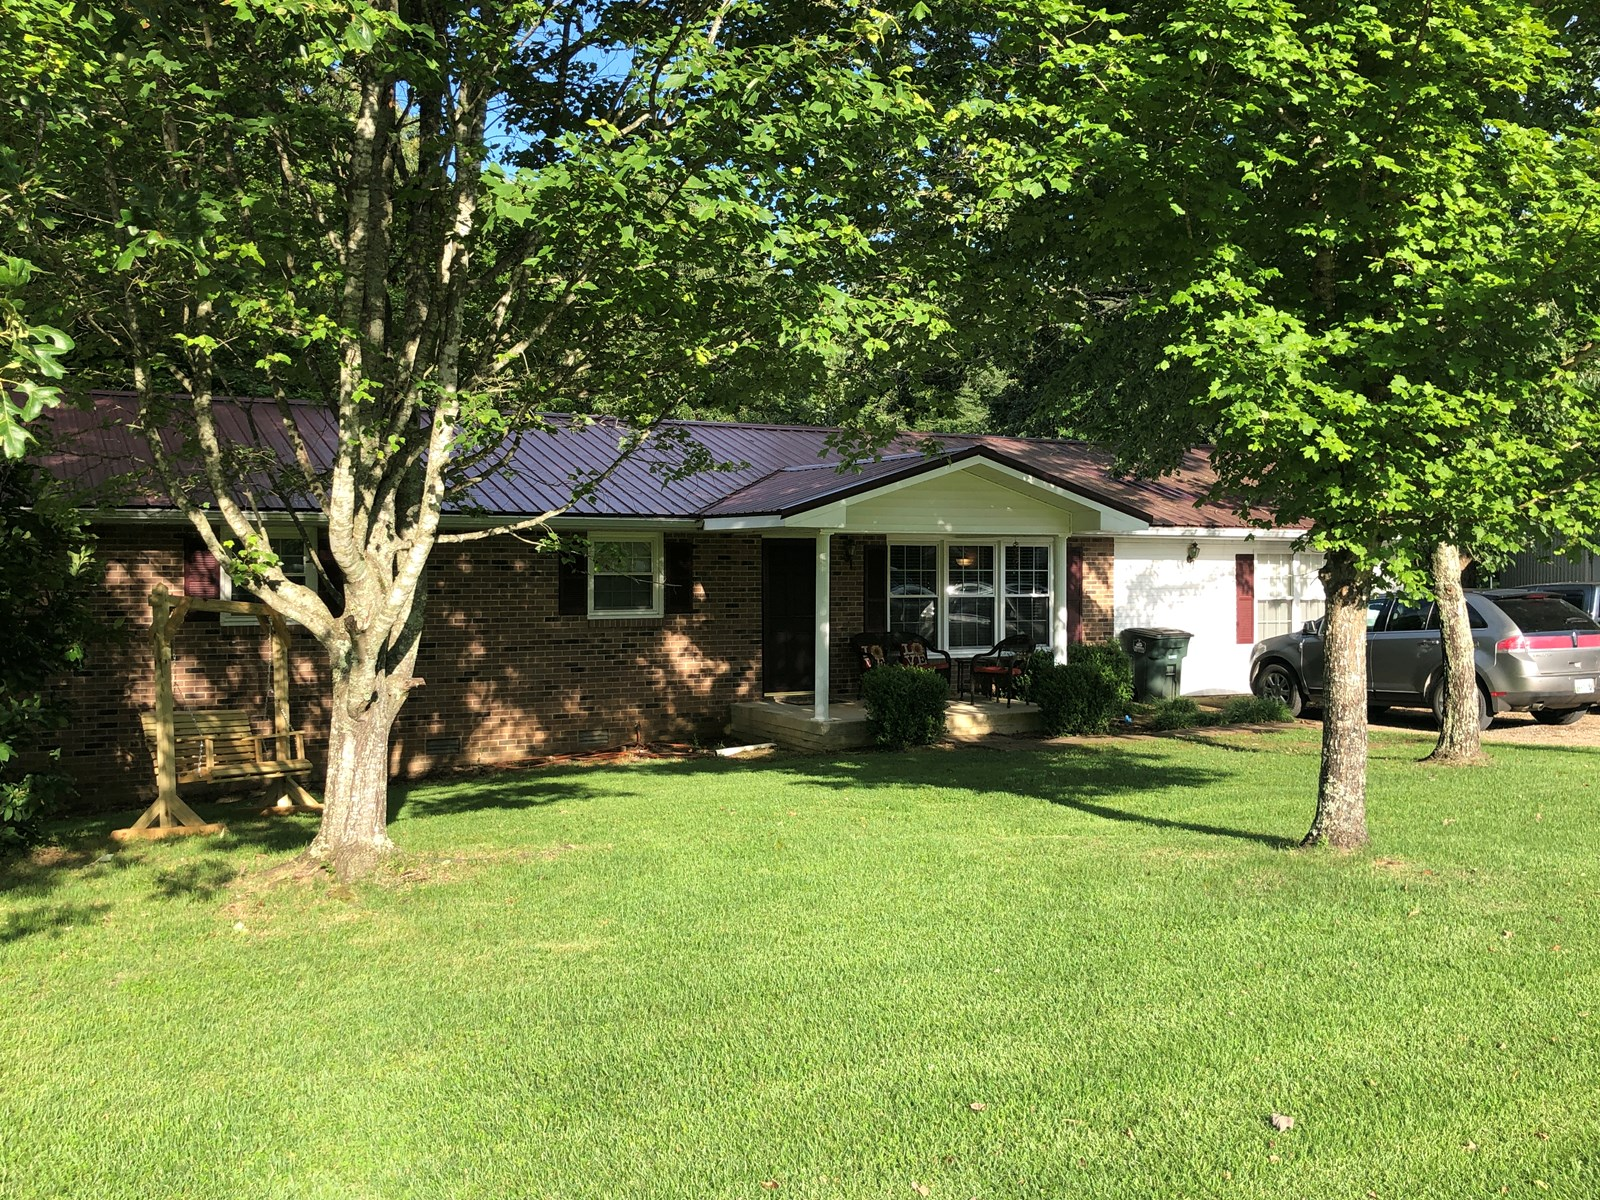 4 BEDROOM BRICK HOME FOR SALE IN WAYNE COUNTY TN